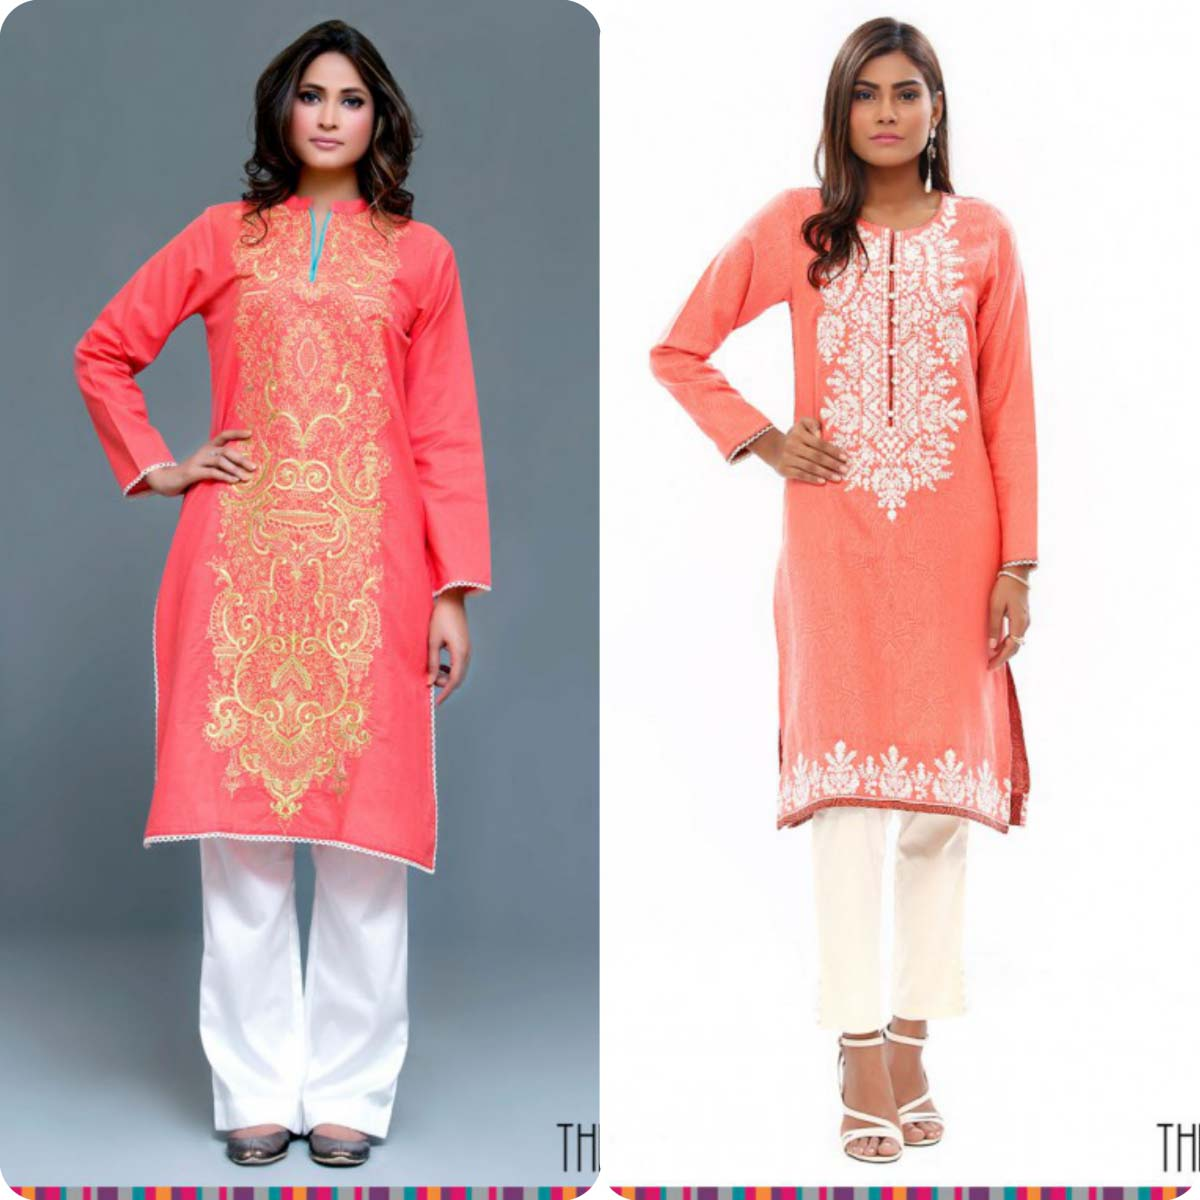 Stylish Embroidered Eid KurtisTunics for Girls By THREDZ 2016-2016 Complete Look-Book (13)